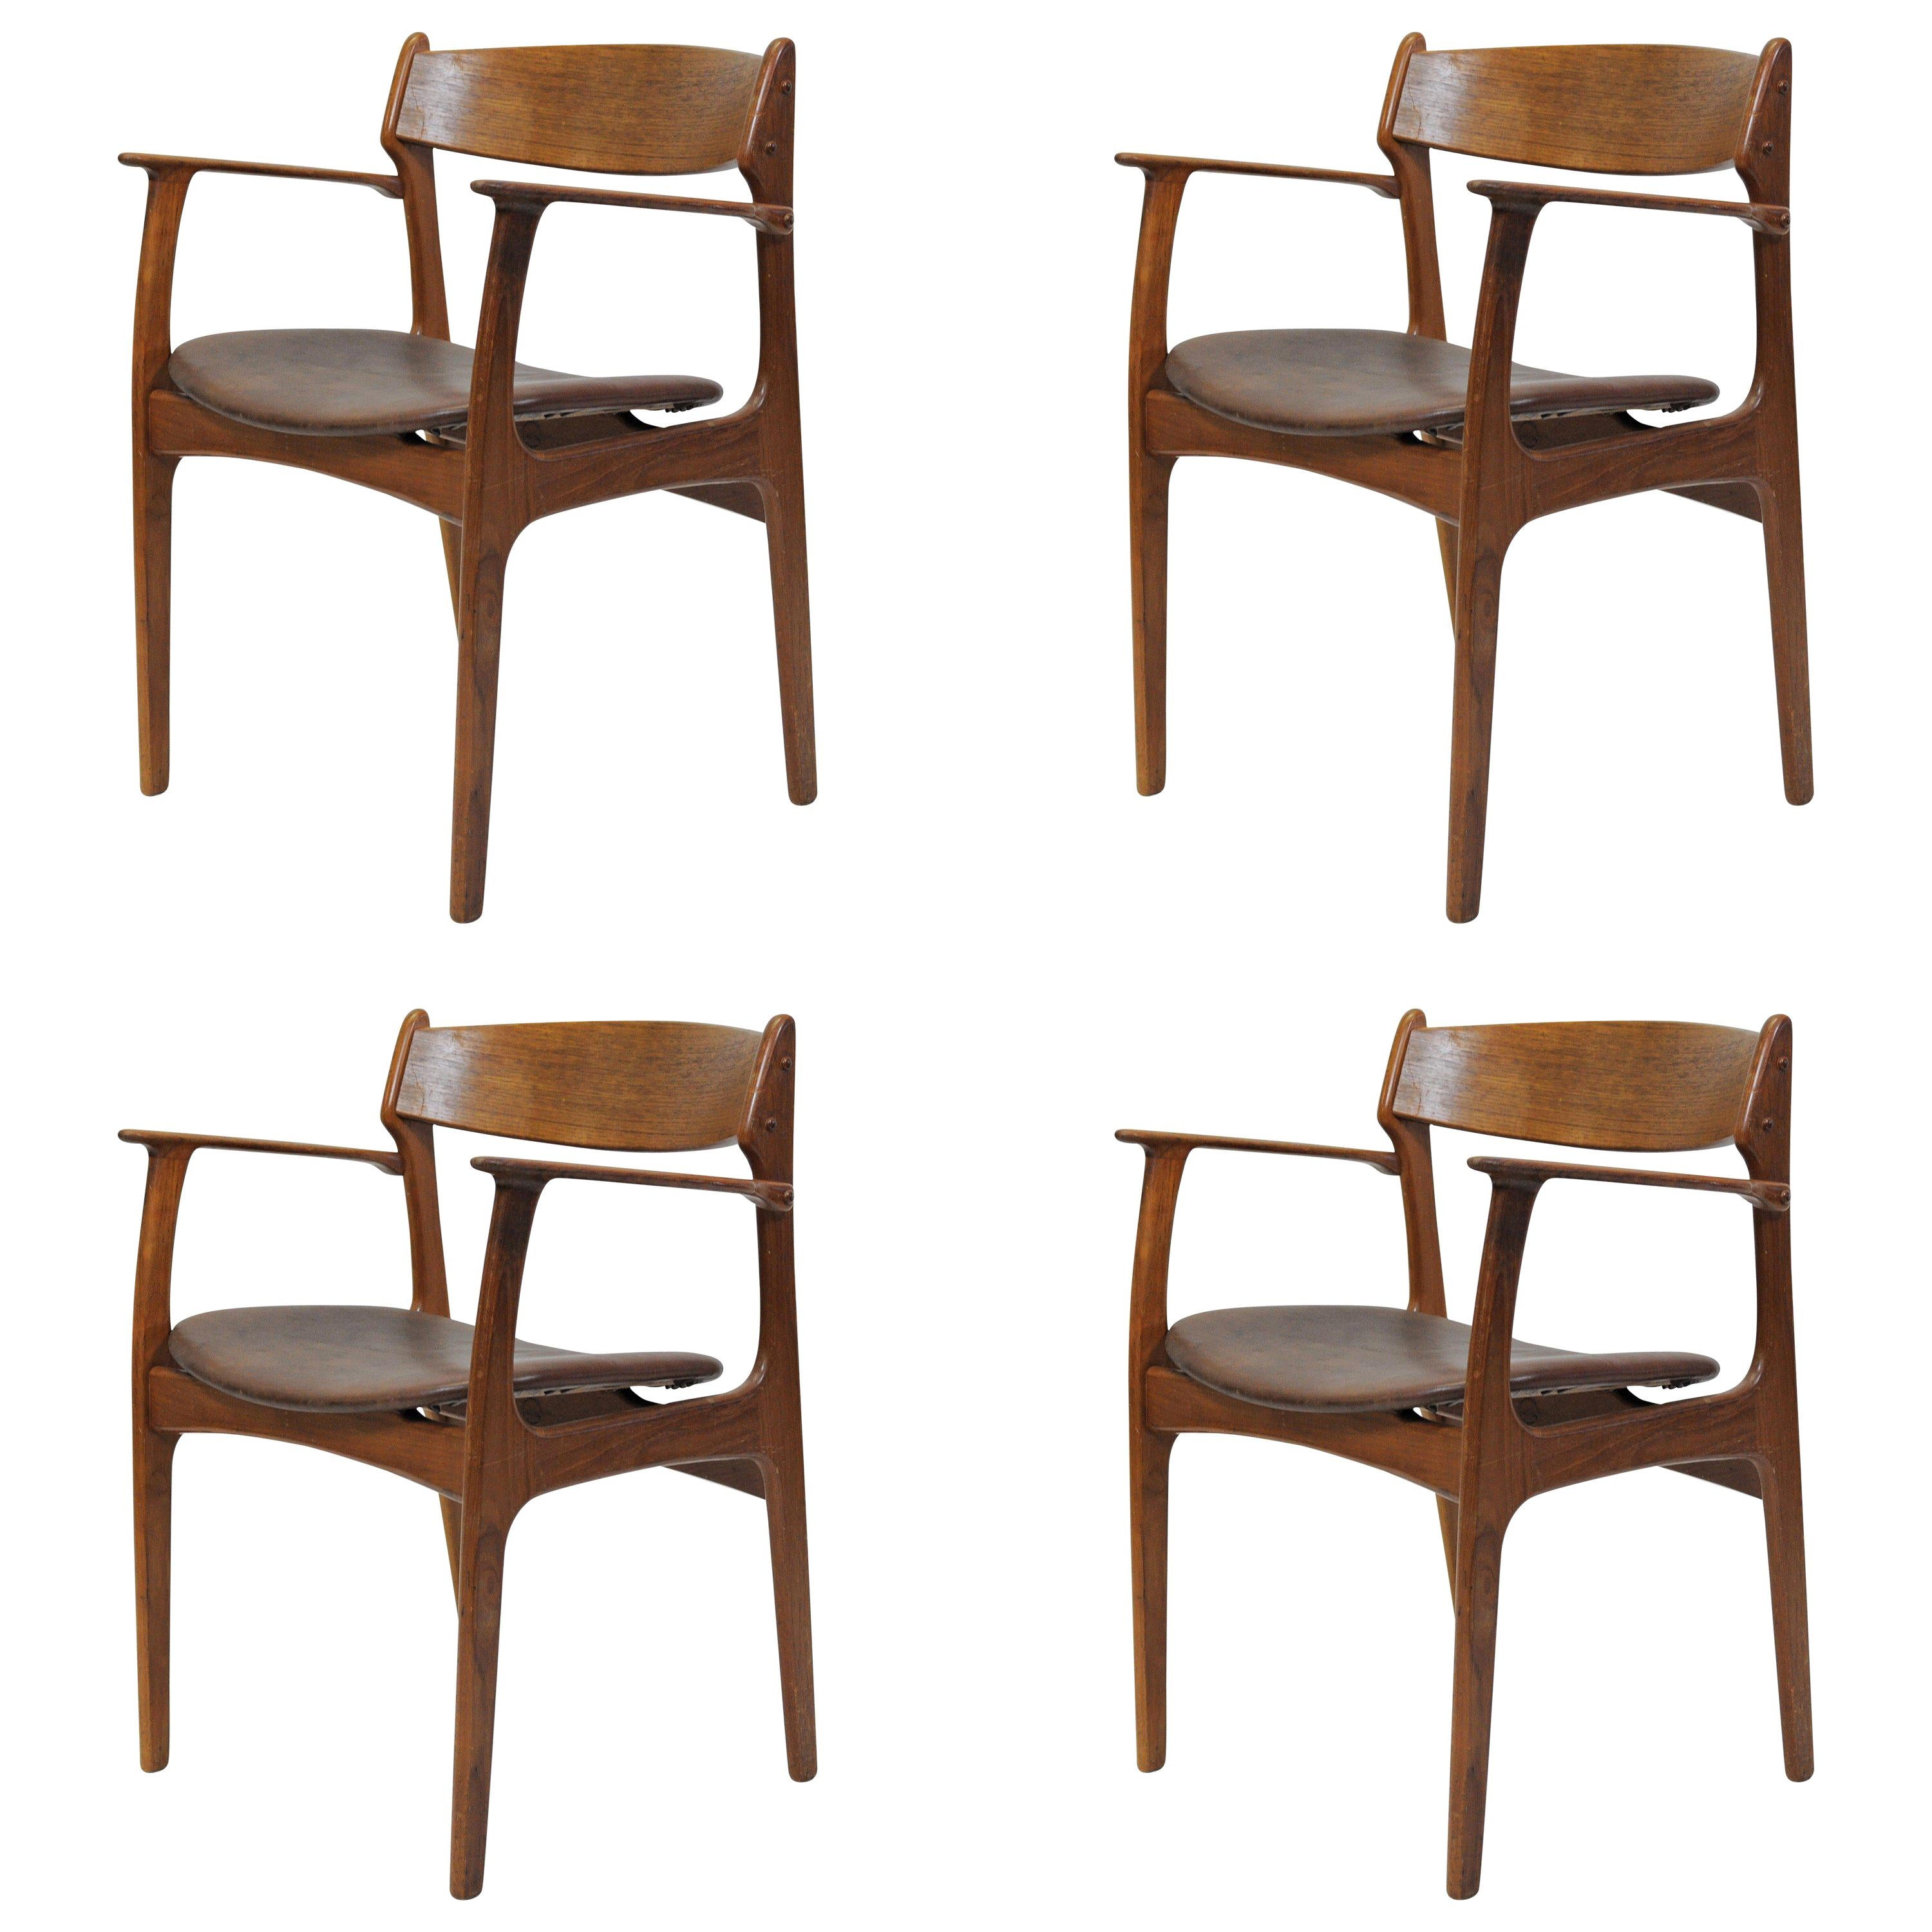 1950s Set of Four Refinished Erik Buch Armchairs in Teak, Inc. Reupholstery